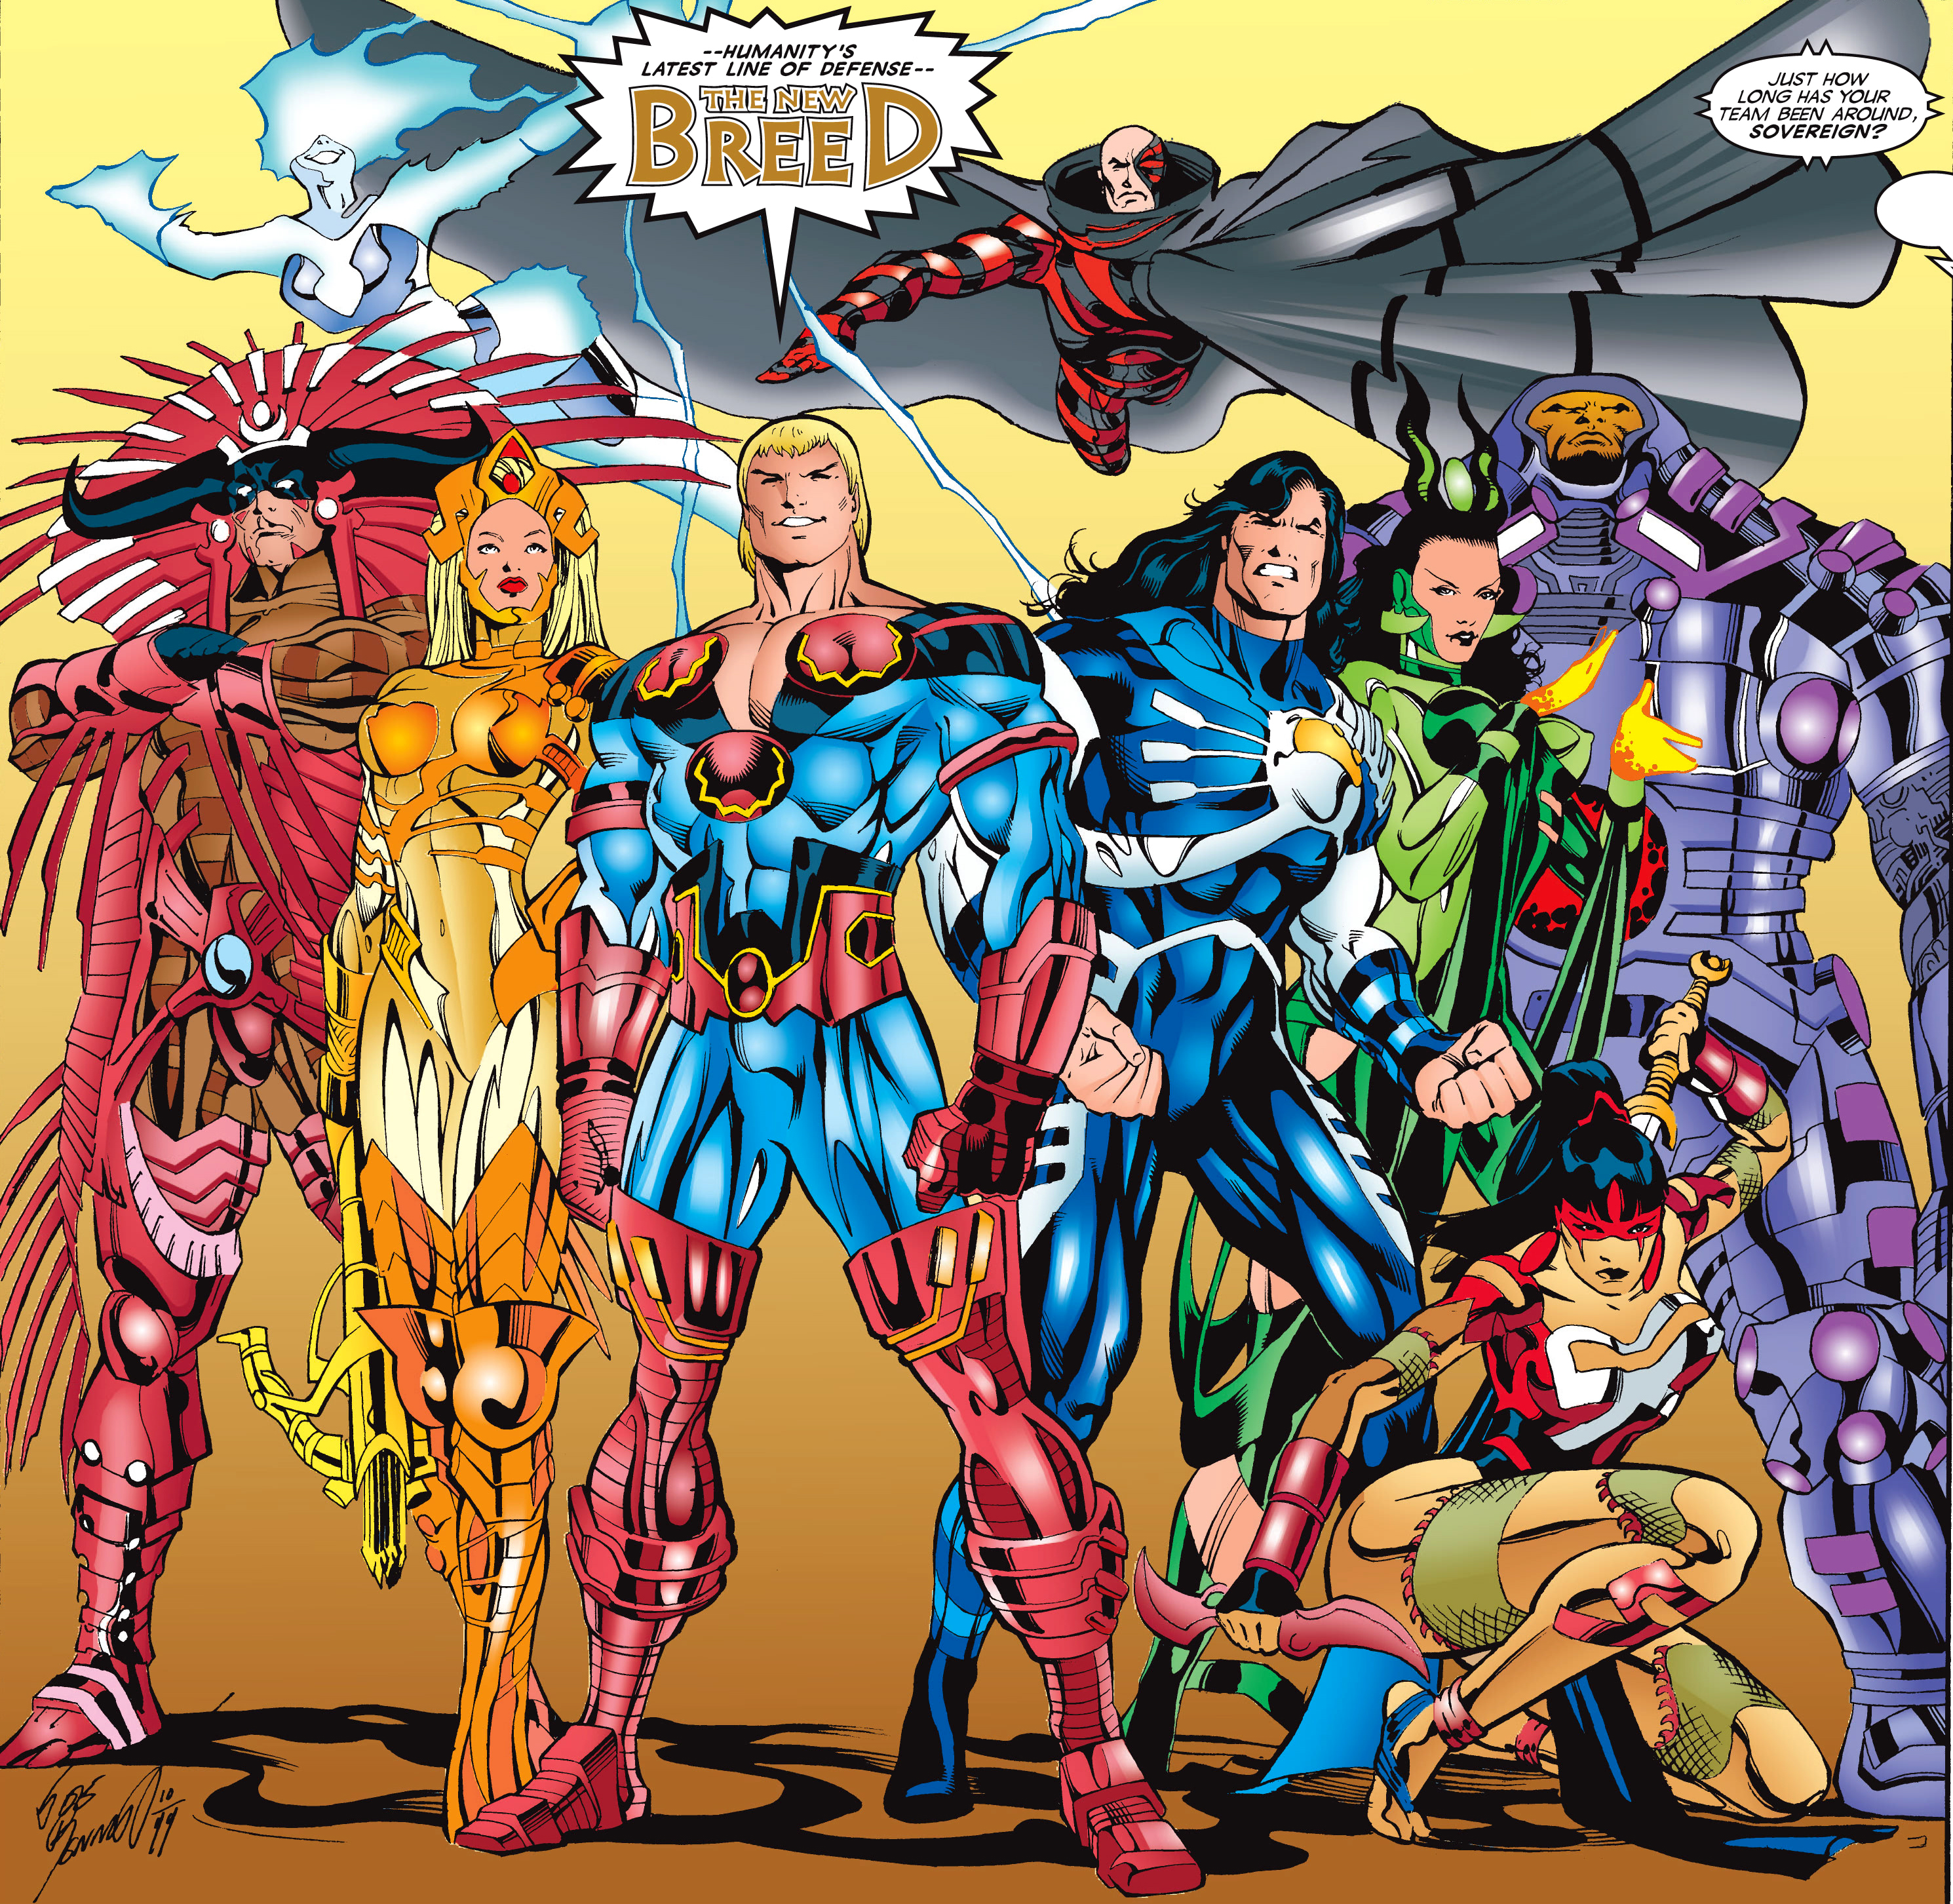 New Breed (Earth-616)/Gallery